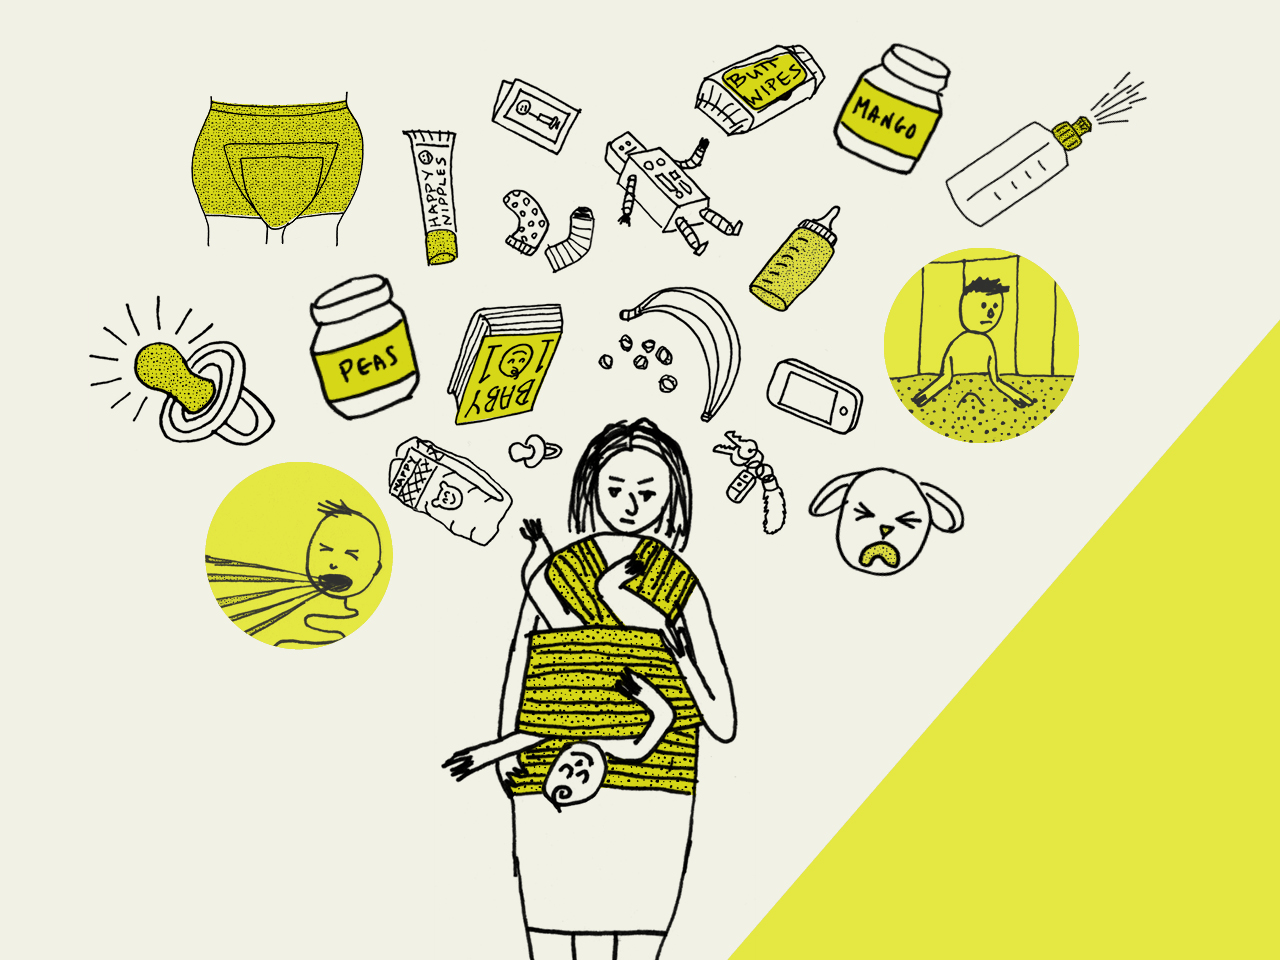 You bought all the books. You went to the prenatal classes. You listened to a whole lot of advice. All those Facebook friends posting pics of their adorable babies make it look so easy, right?   Read full article here    Co-produced with Ariel Brewster Art direction: me Illustrations: Anthony Swaneveld